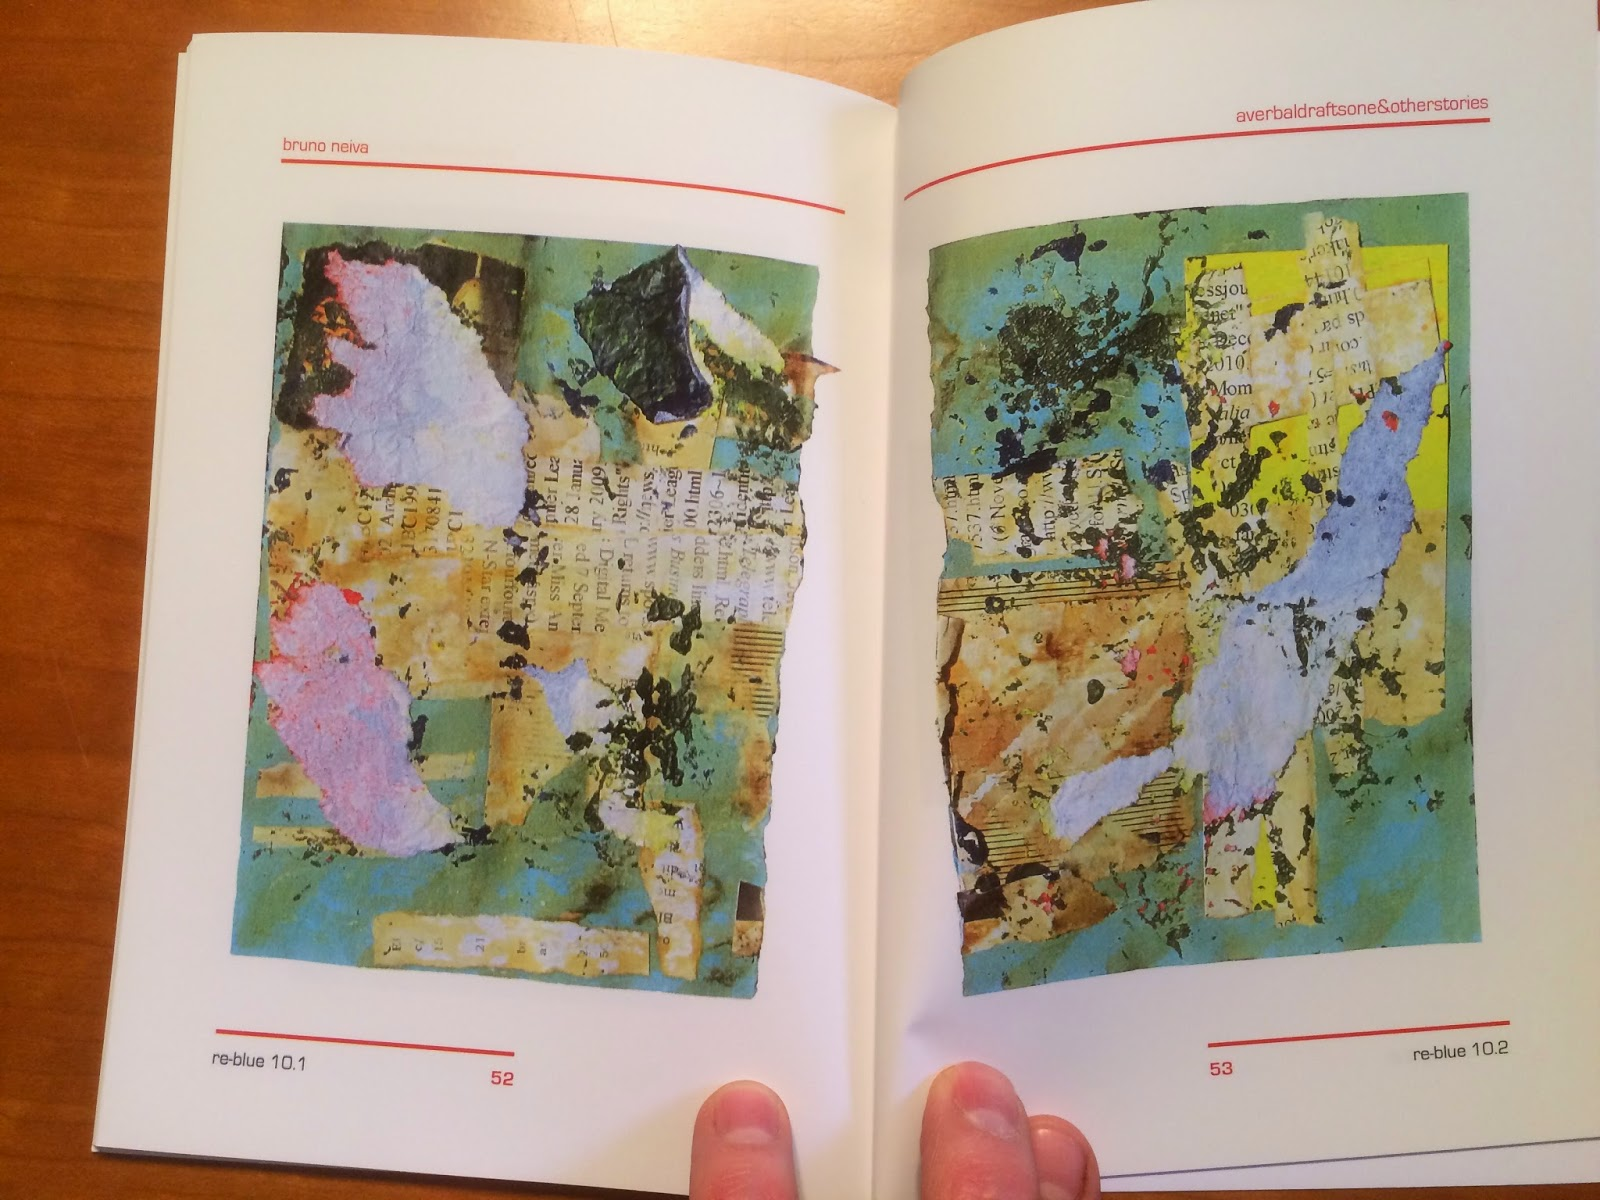 pages 52 and 53